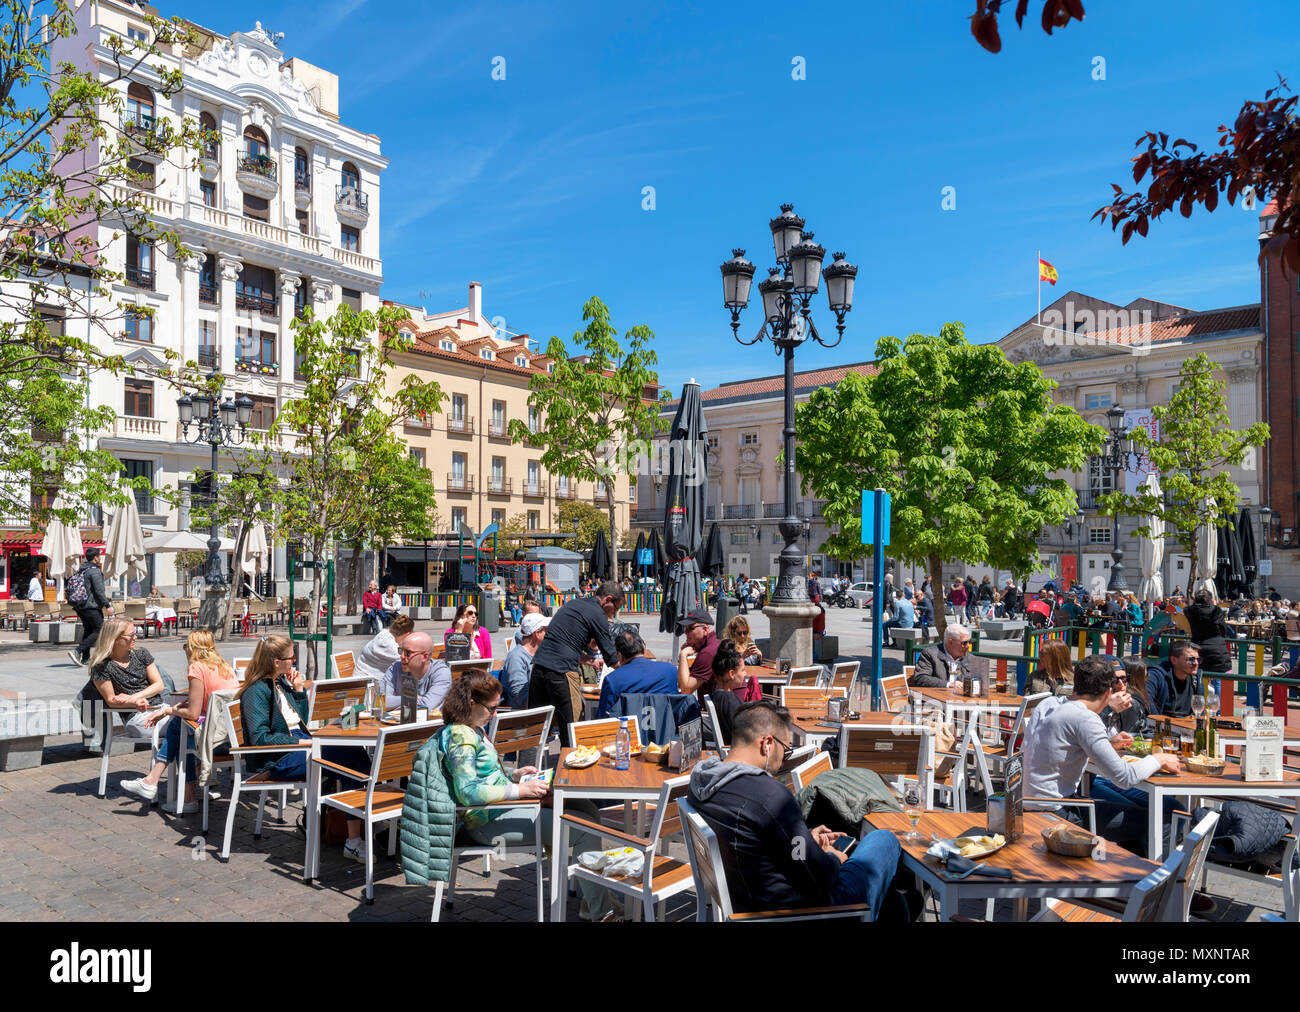 Madrid, Spain. Cafes and bars on Plaza de Santa Ana at lunchtime, Huertas district, Madrid, Spain - Stock Image